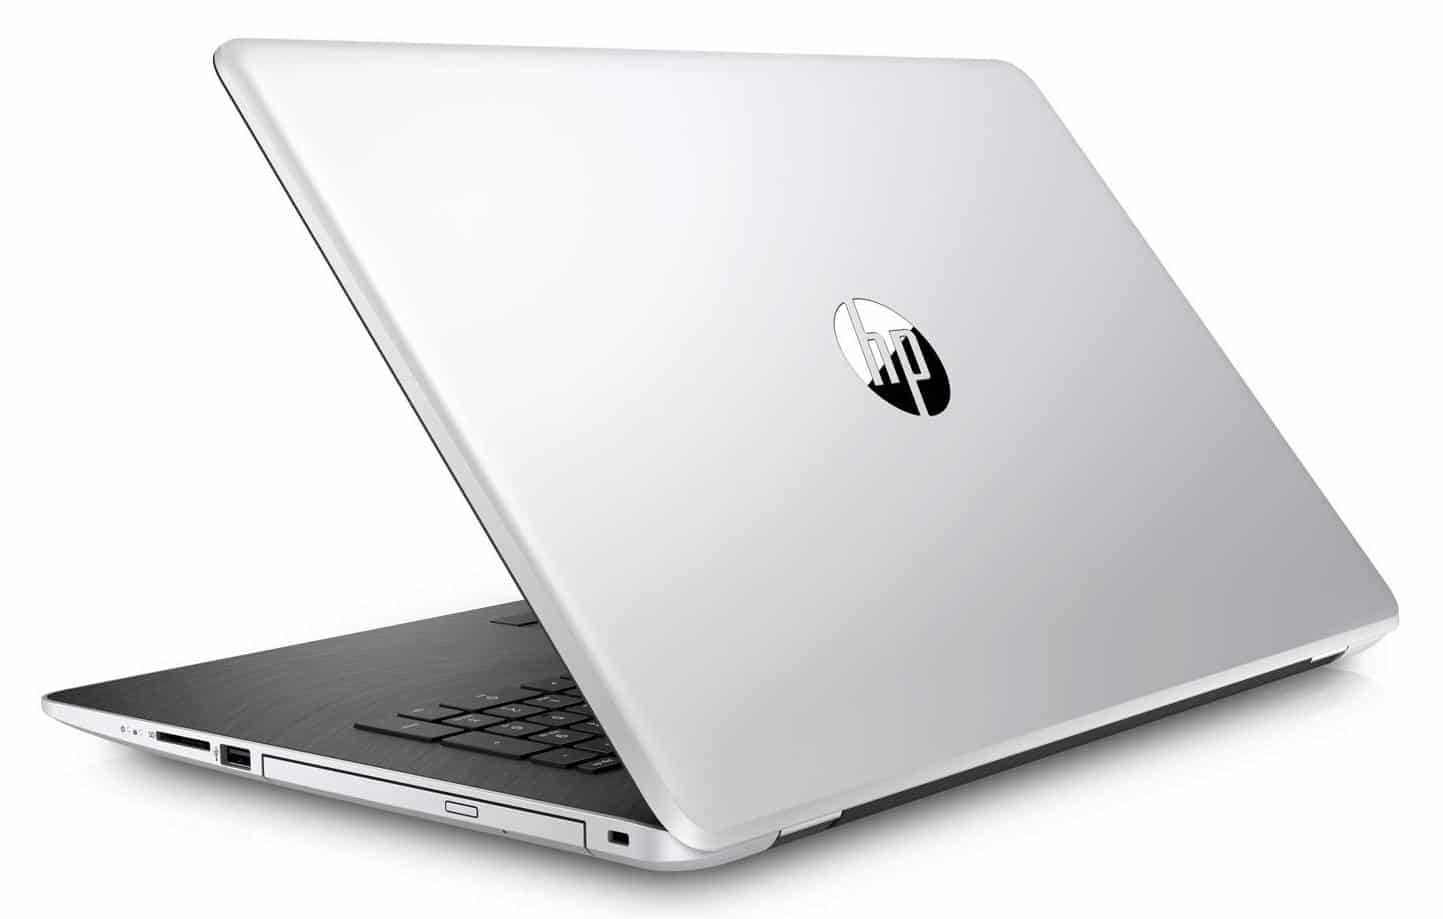 HP 17-bs103nf, PC portable 17 pouces Quad i5 SSD/HDD Radeon 530 (585€)